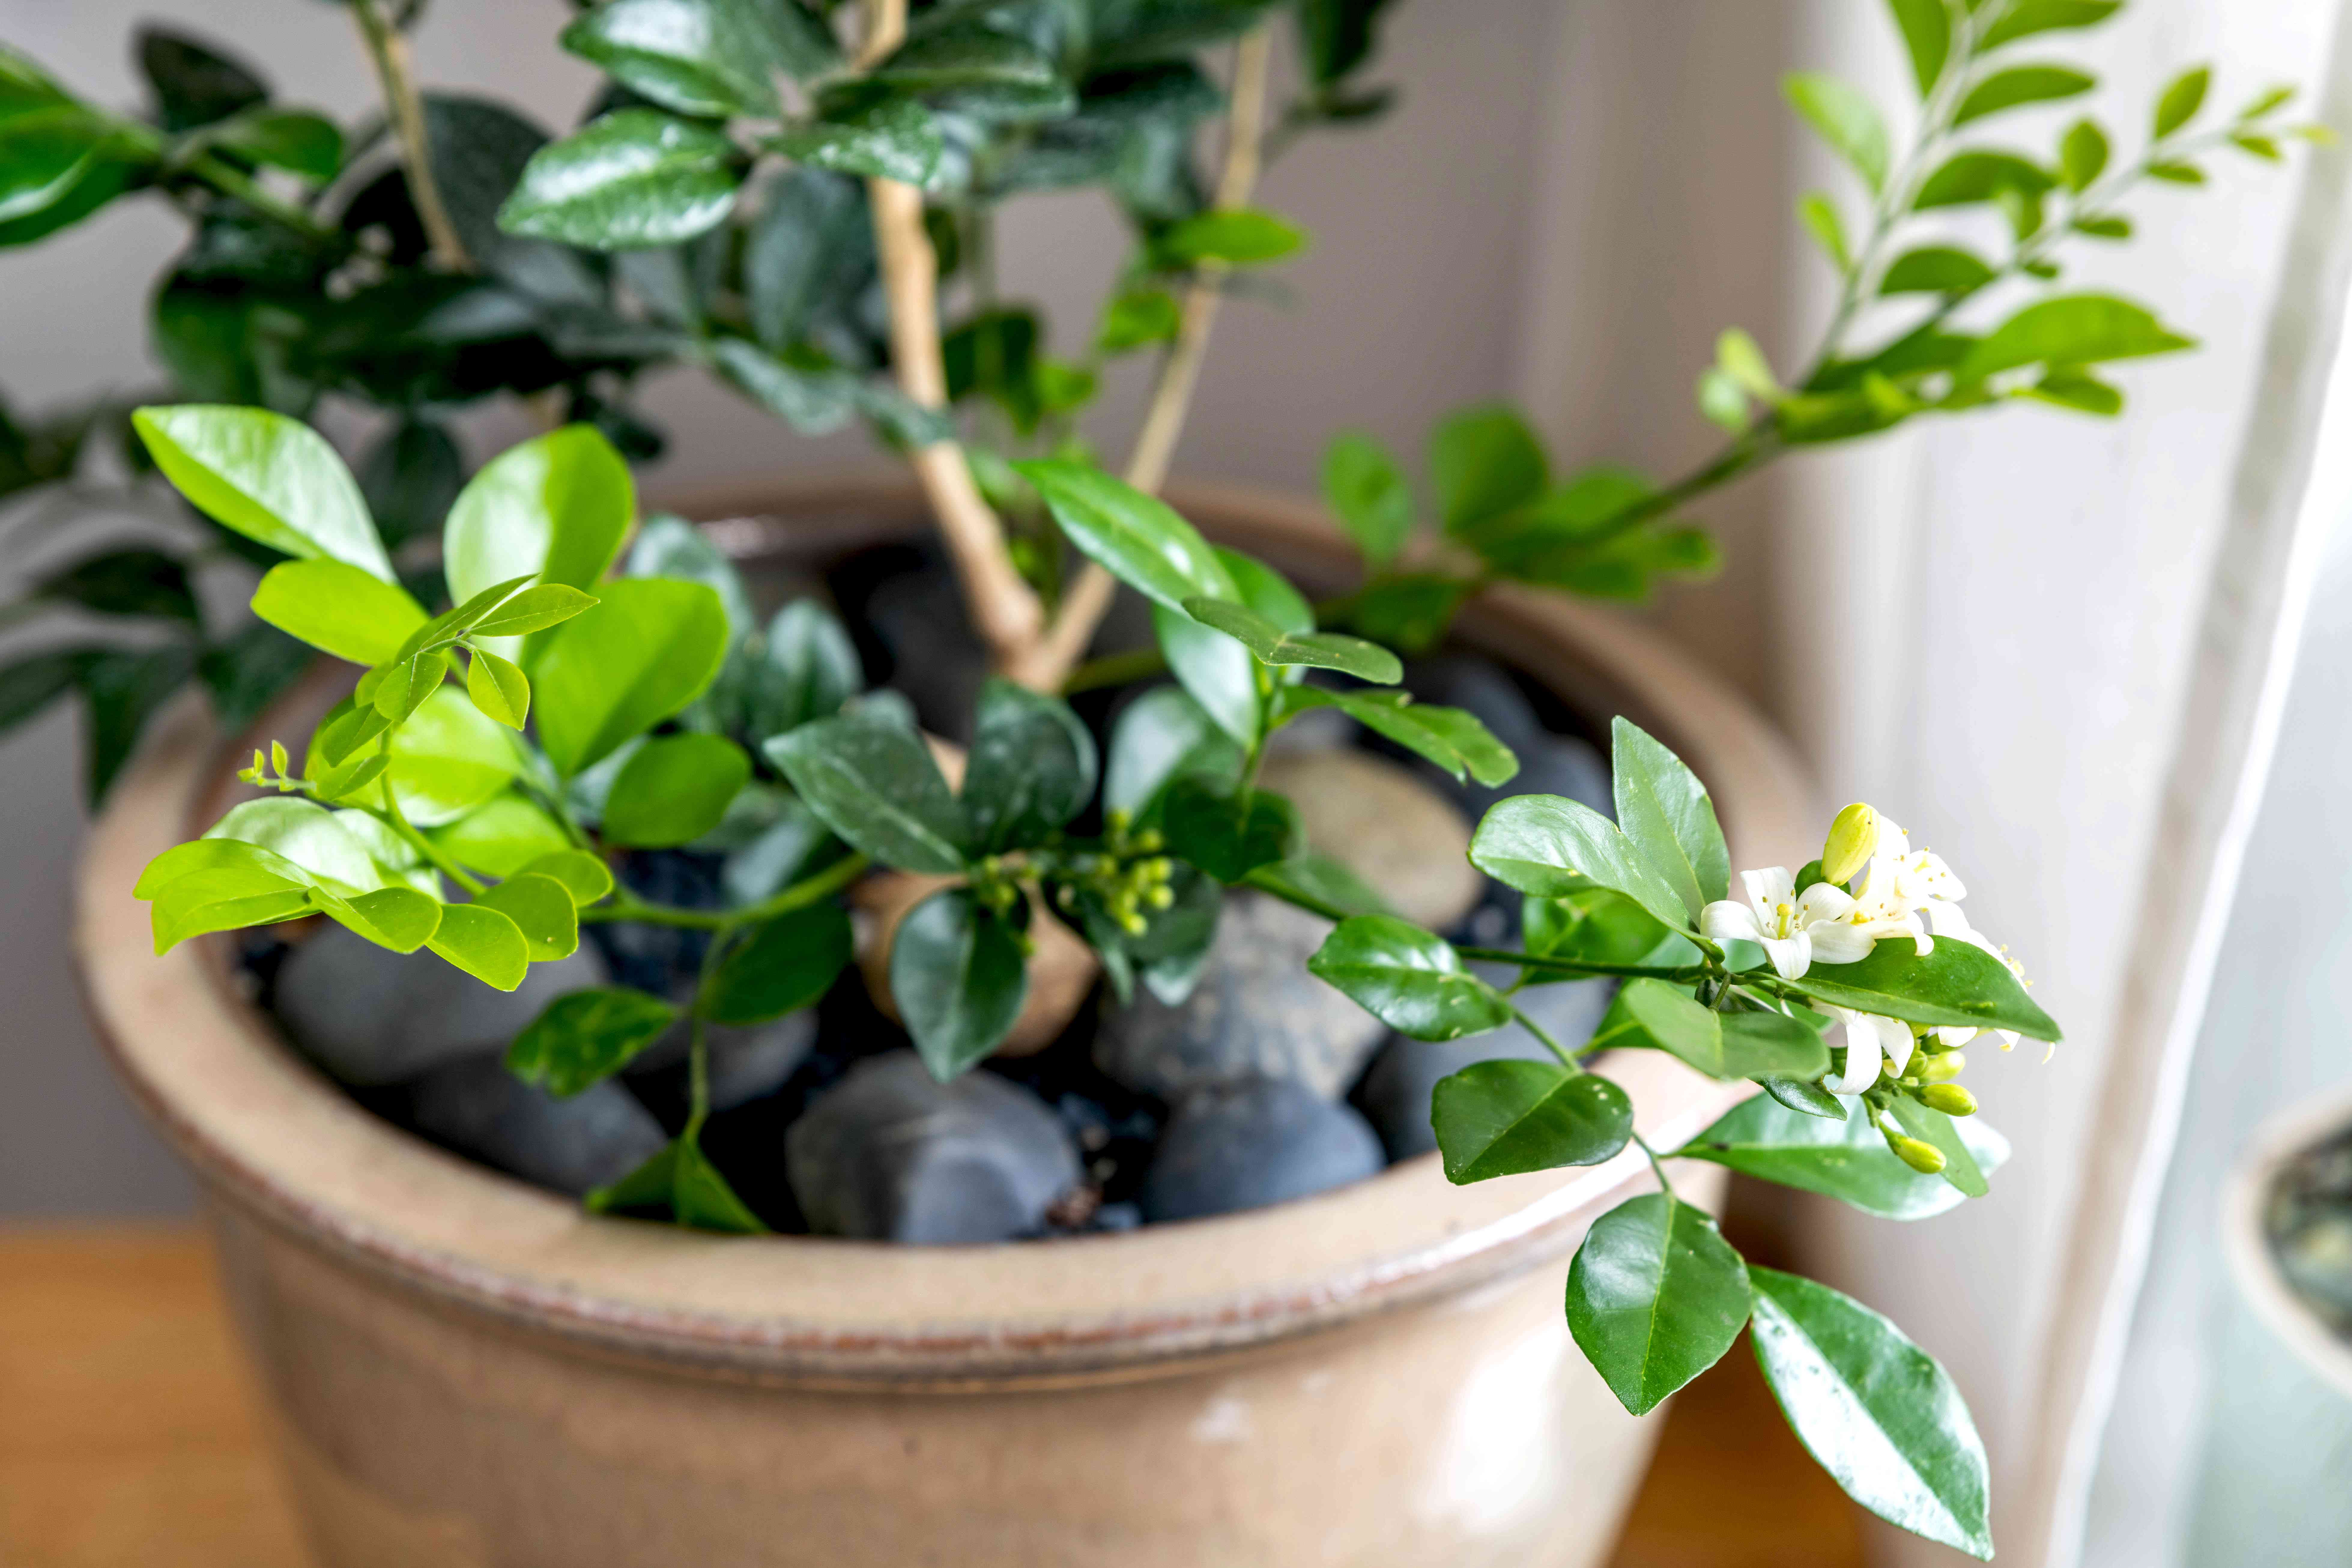 Orange jasmine plant with small white flowers and buds in tan pot with black pebbles